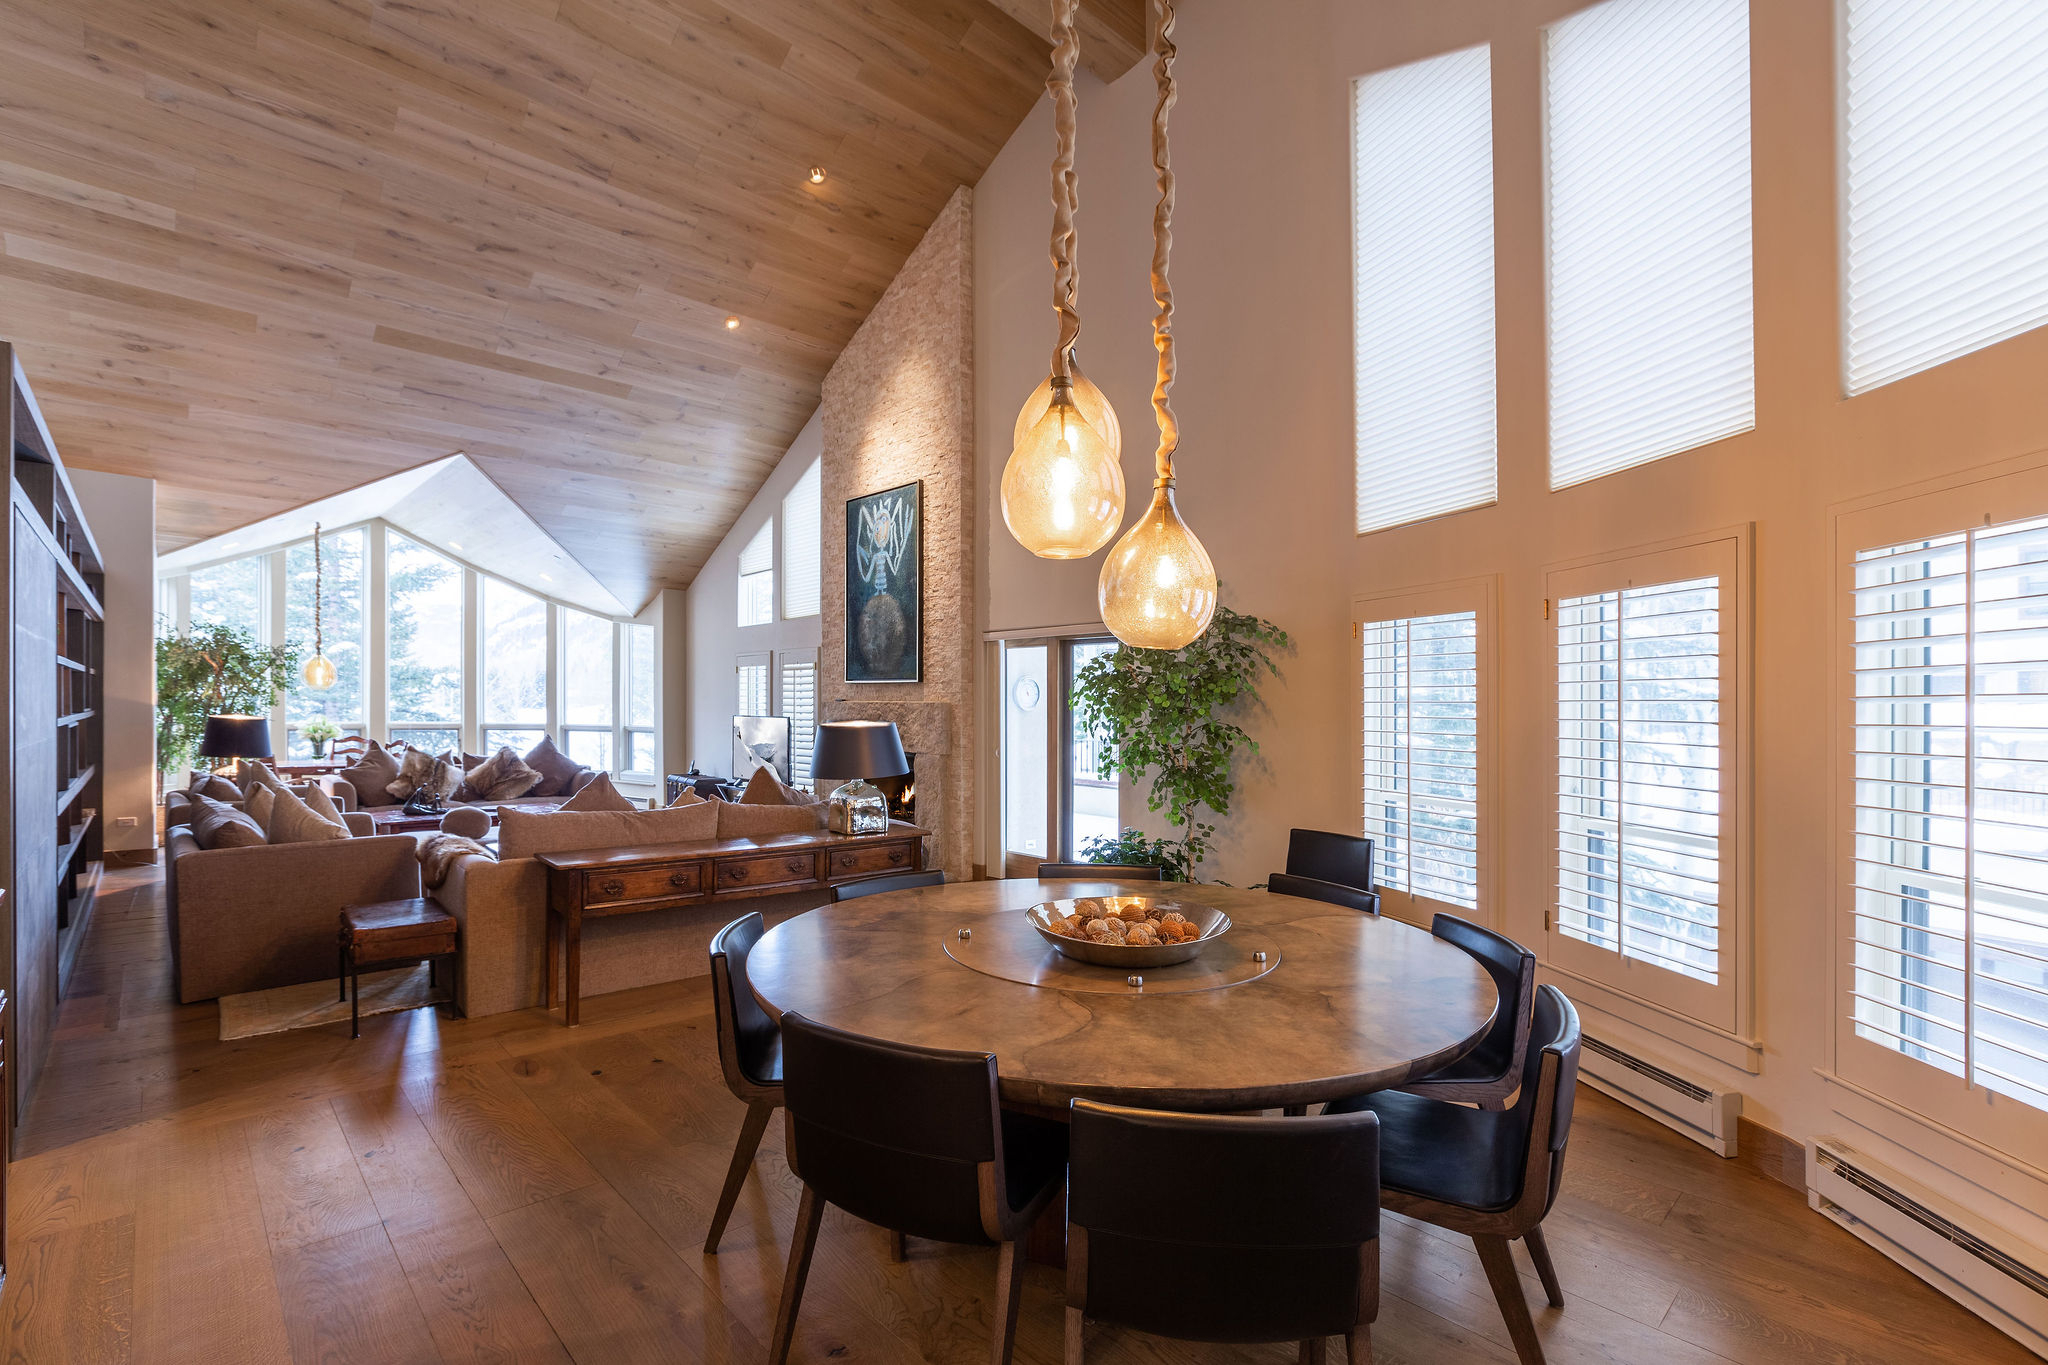 Vail Realty – Northwoods Spruce Bldg 313 5 Bed 4 Bath Vacation Intended For Most Current Northwoods 3 Piece Dining Sets (Image 18 of 20)